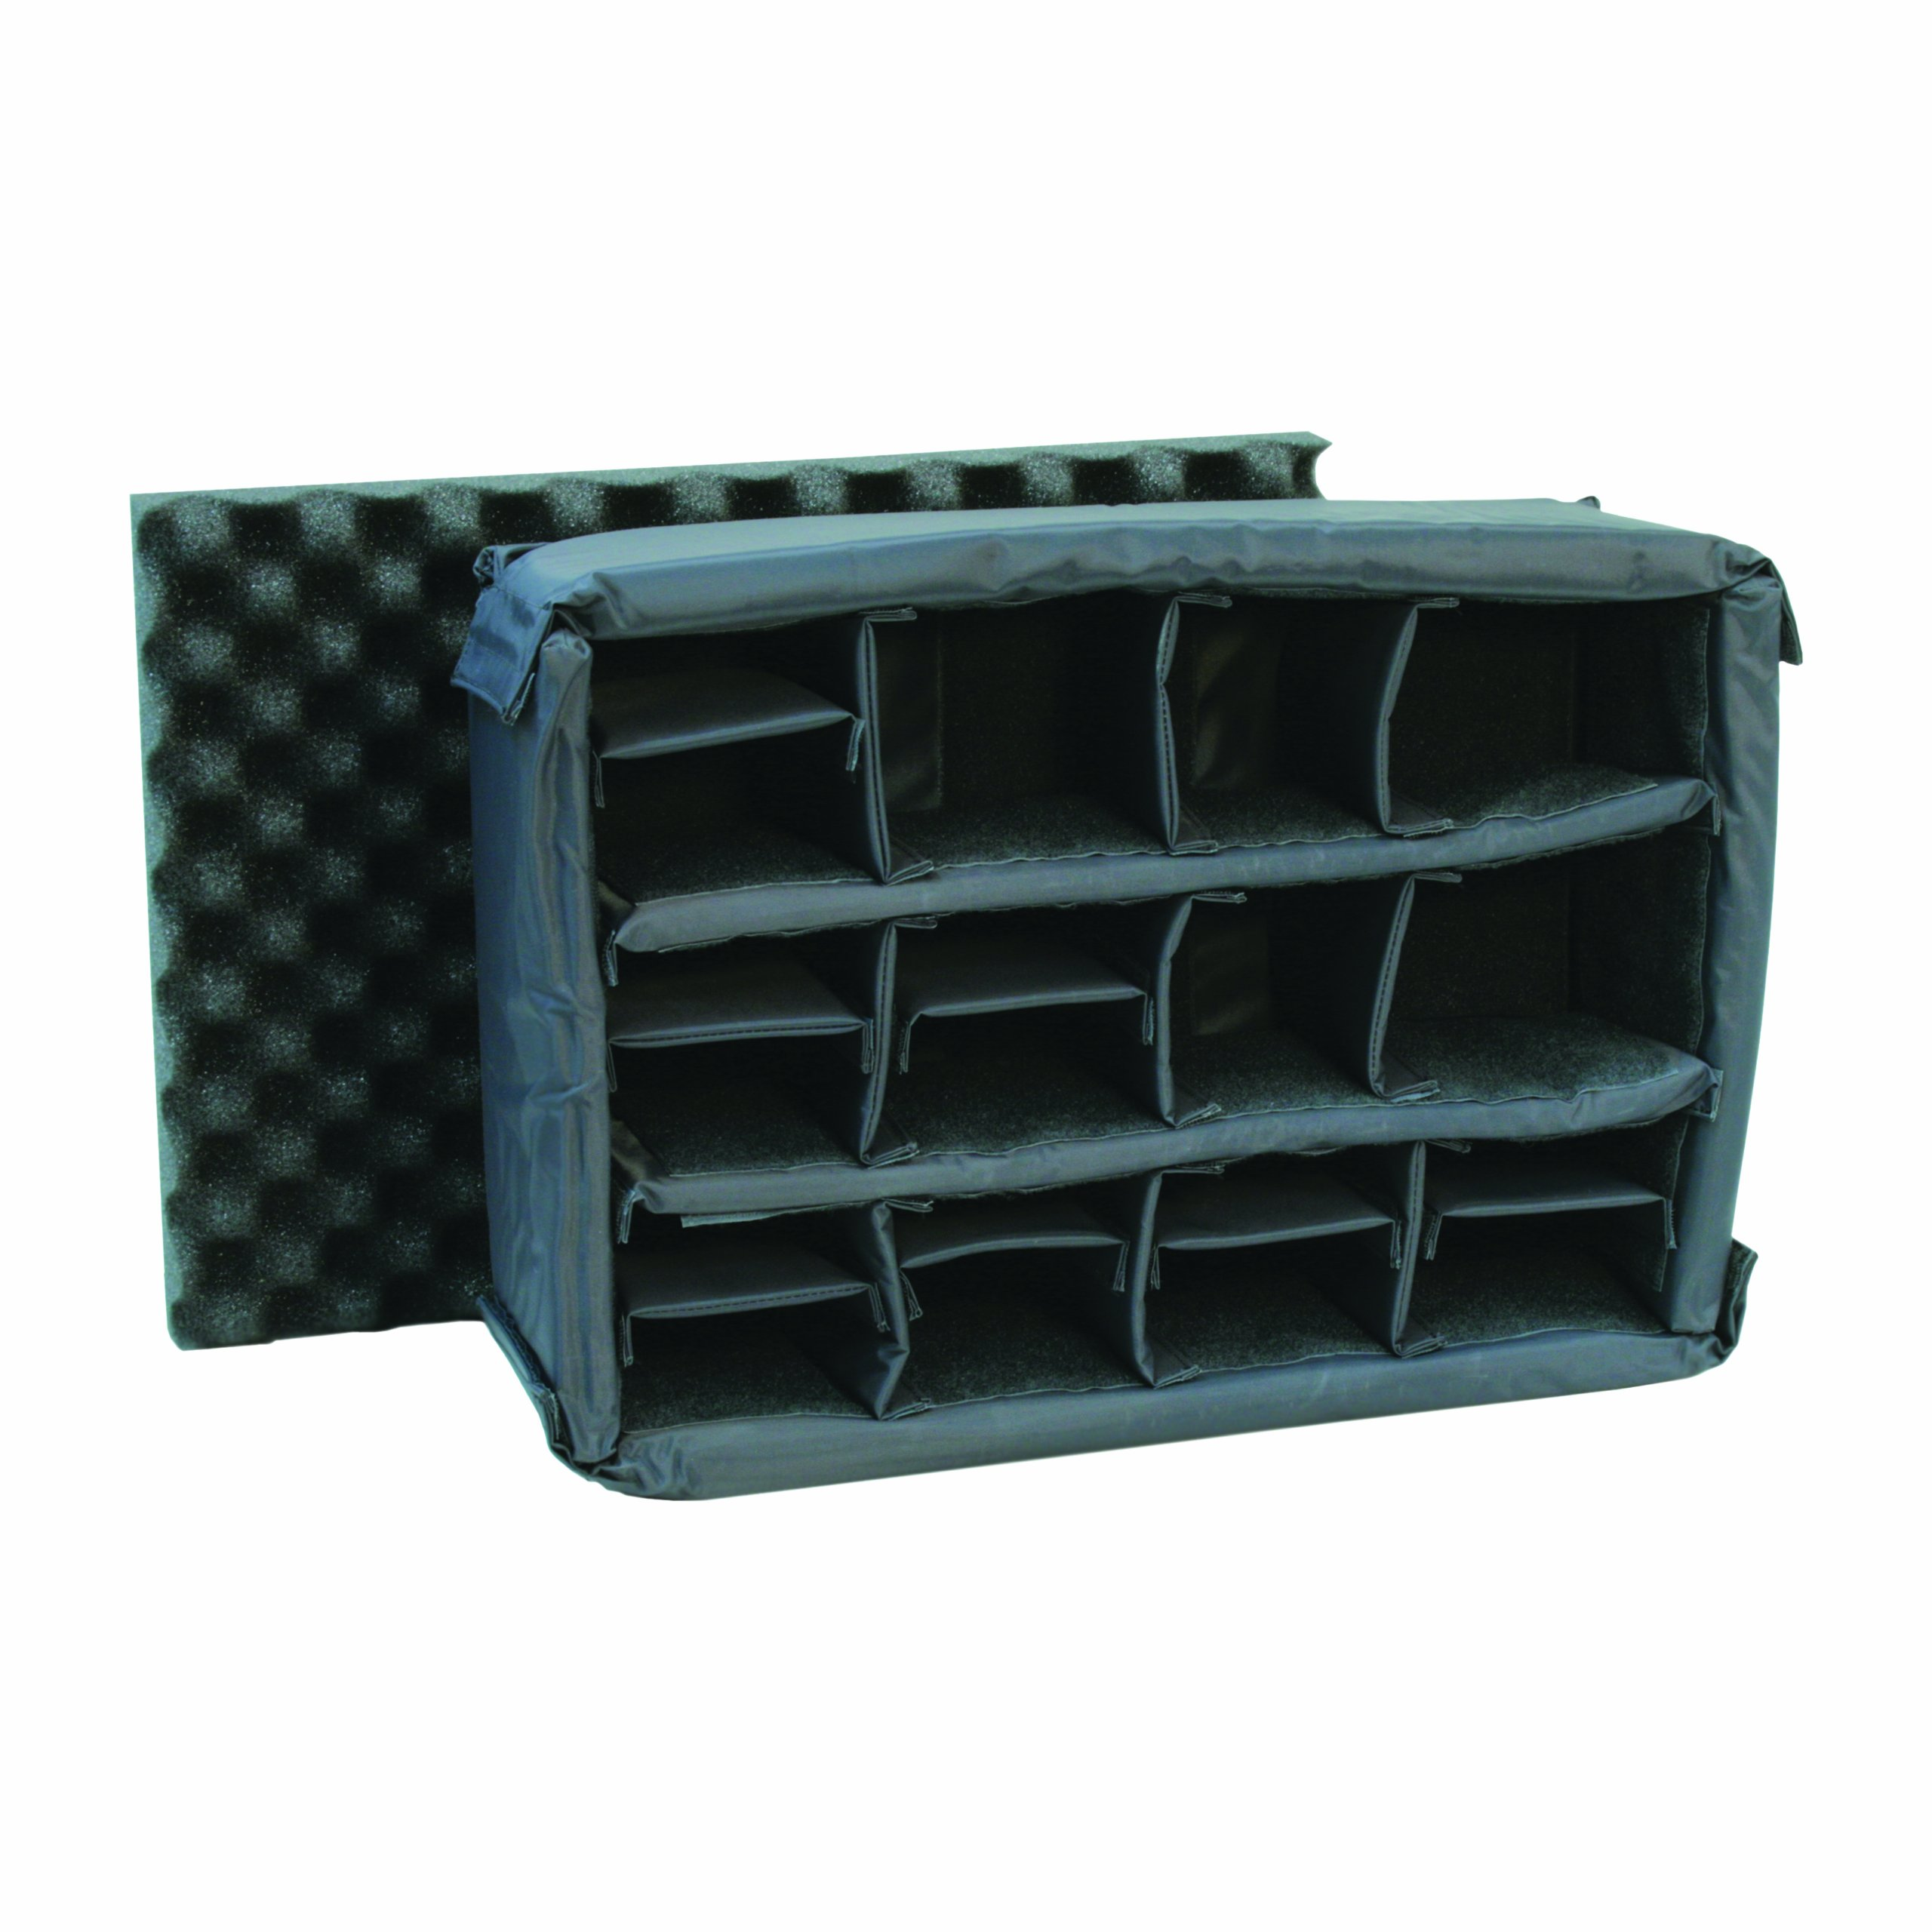 Padded Divider for 940 Nanuk Case by Nanuk